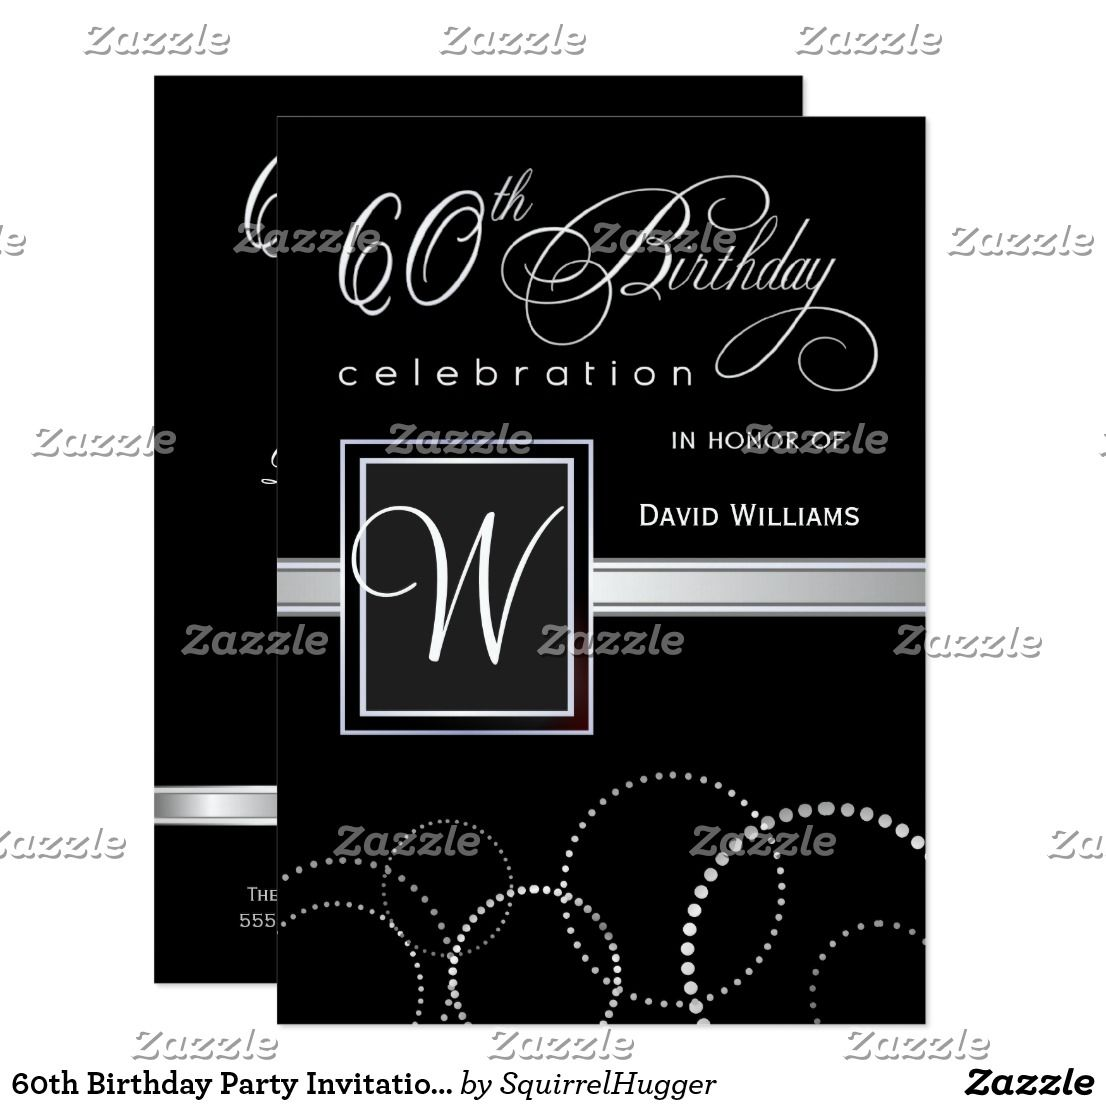 60th Birthday Party Invitations - with Monogram | Party invitations ...